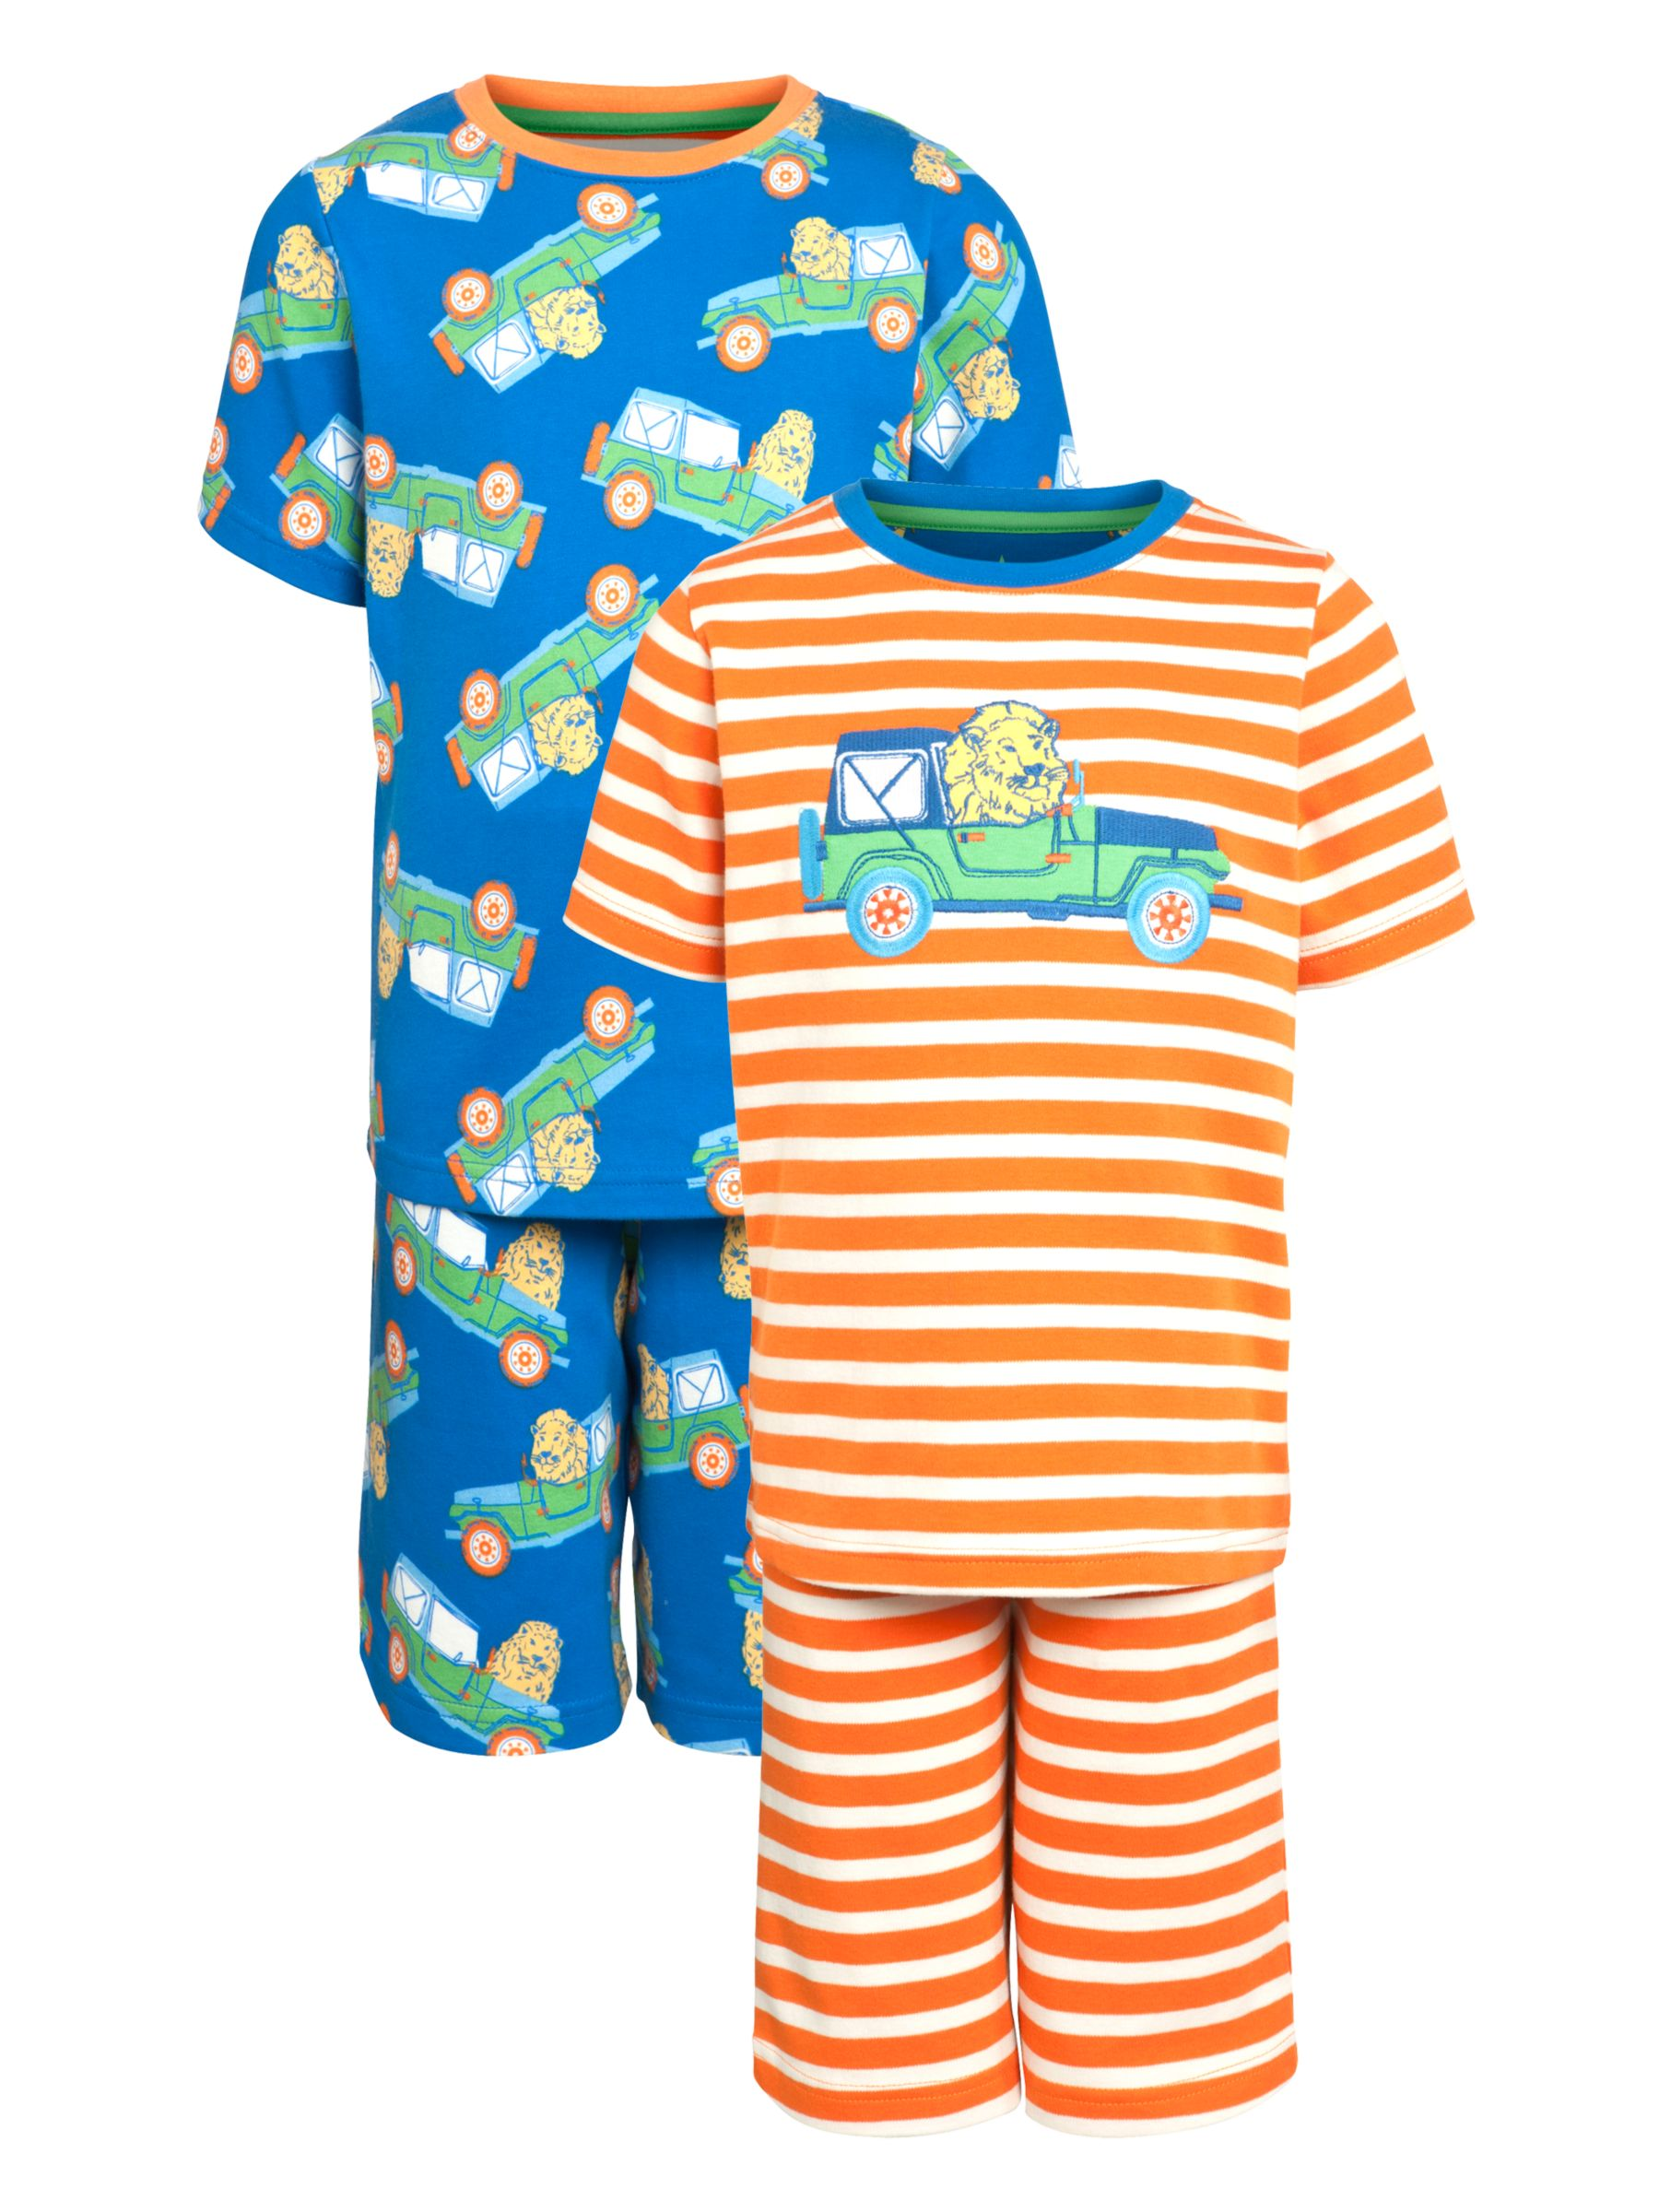 John Lewis Boy Lion Stripe Short Pyjamas, Pack of 2, Orange/Navy